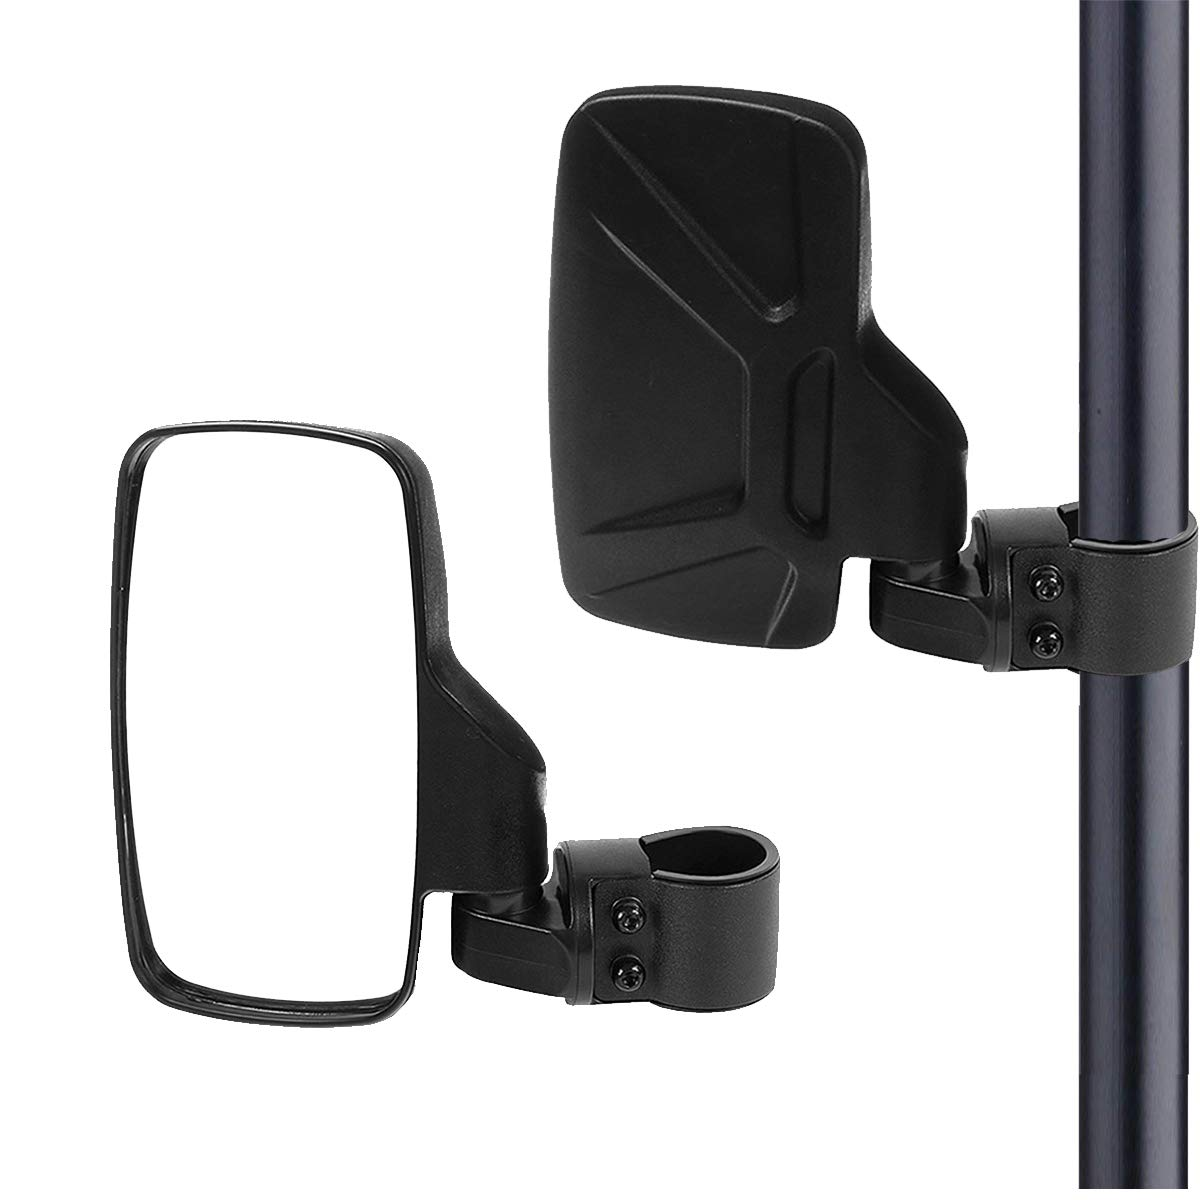 UTV Side View Mirrors, Offroad Rear View Mirror with Shatter-Proof Tempered Glass for Polaris RZR, Can-Am, Kawasaki, kubota, Yamaha, Maverick moveland